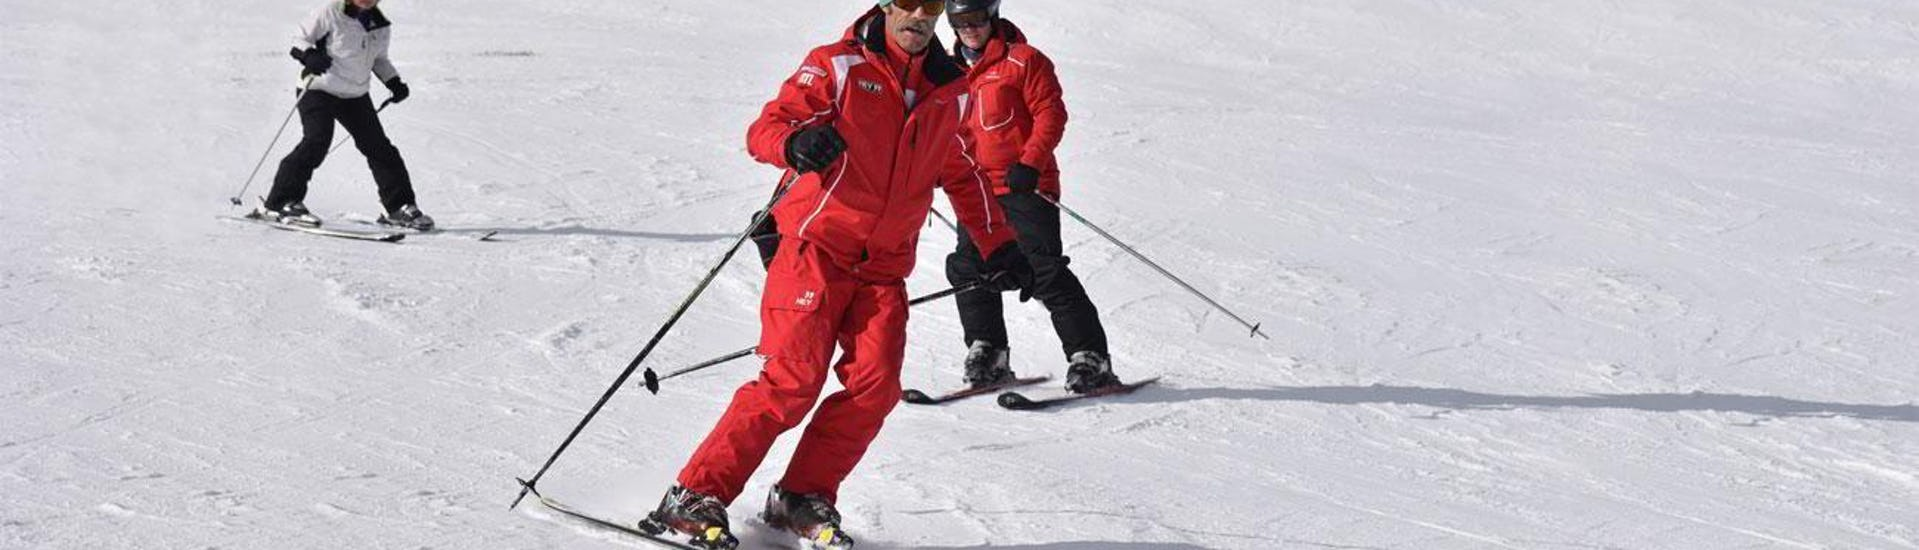 Ski Instructor Private for Adults - February - All Levels